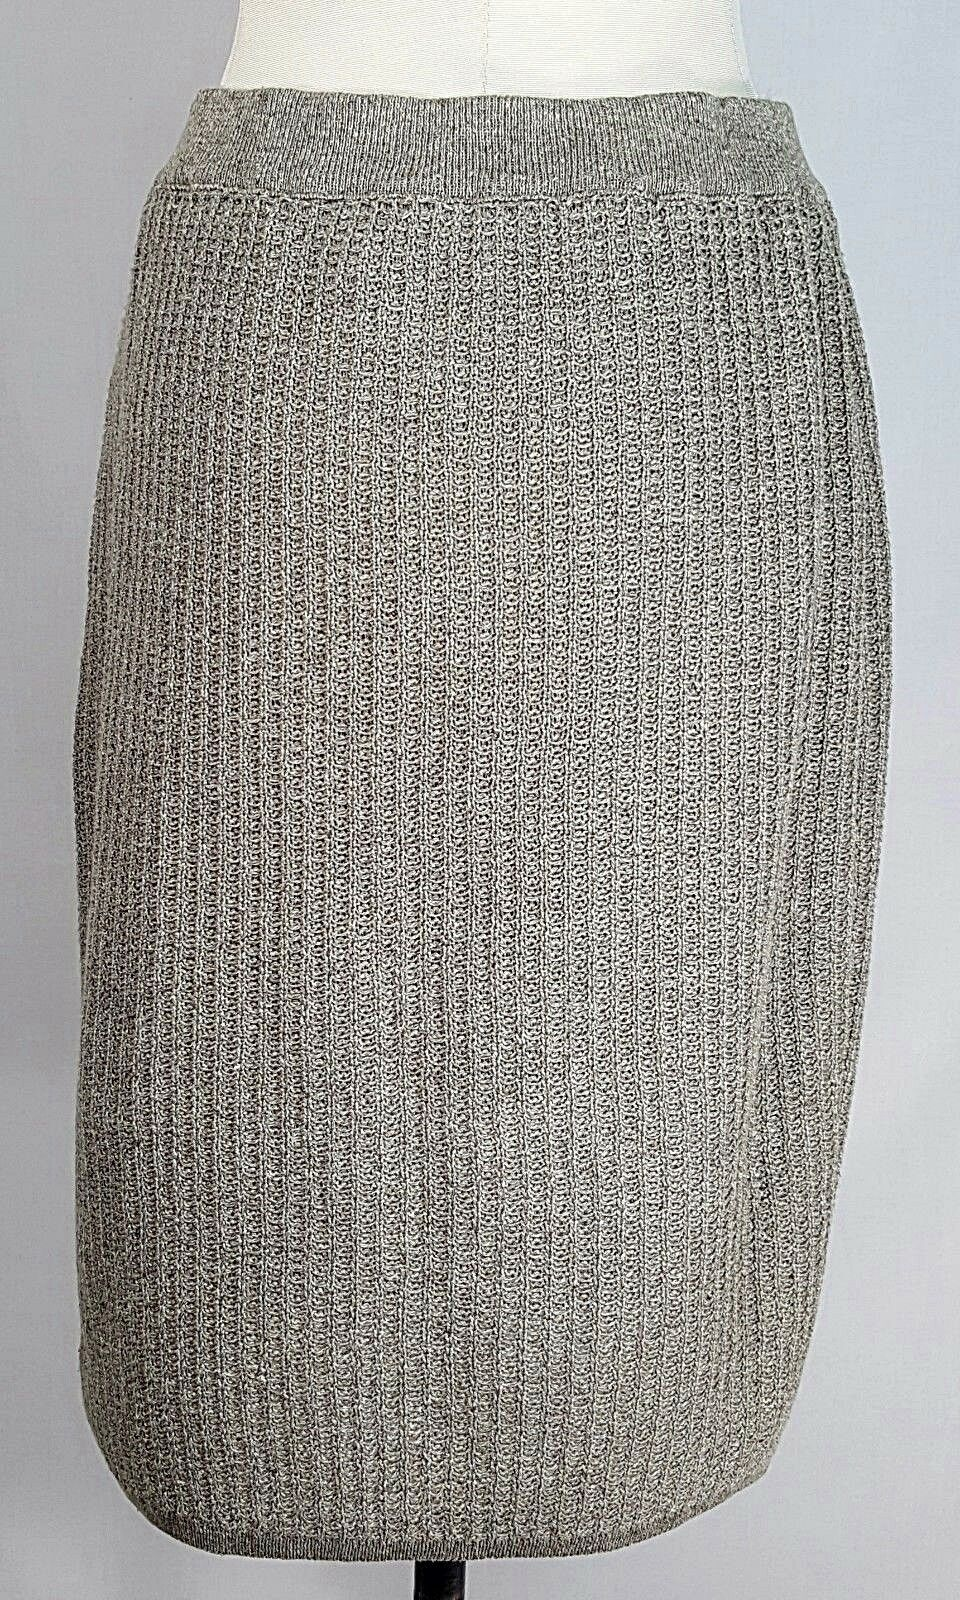 RODIER Linen Silk Knit Skirt Size 42 US10 Women's Beige colord France Made